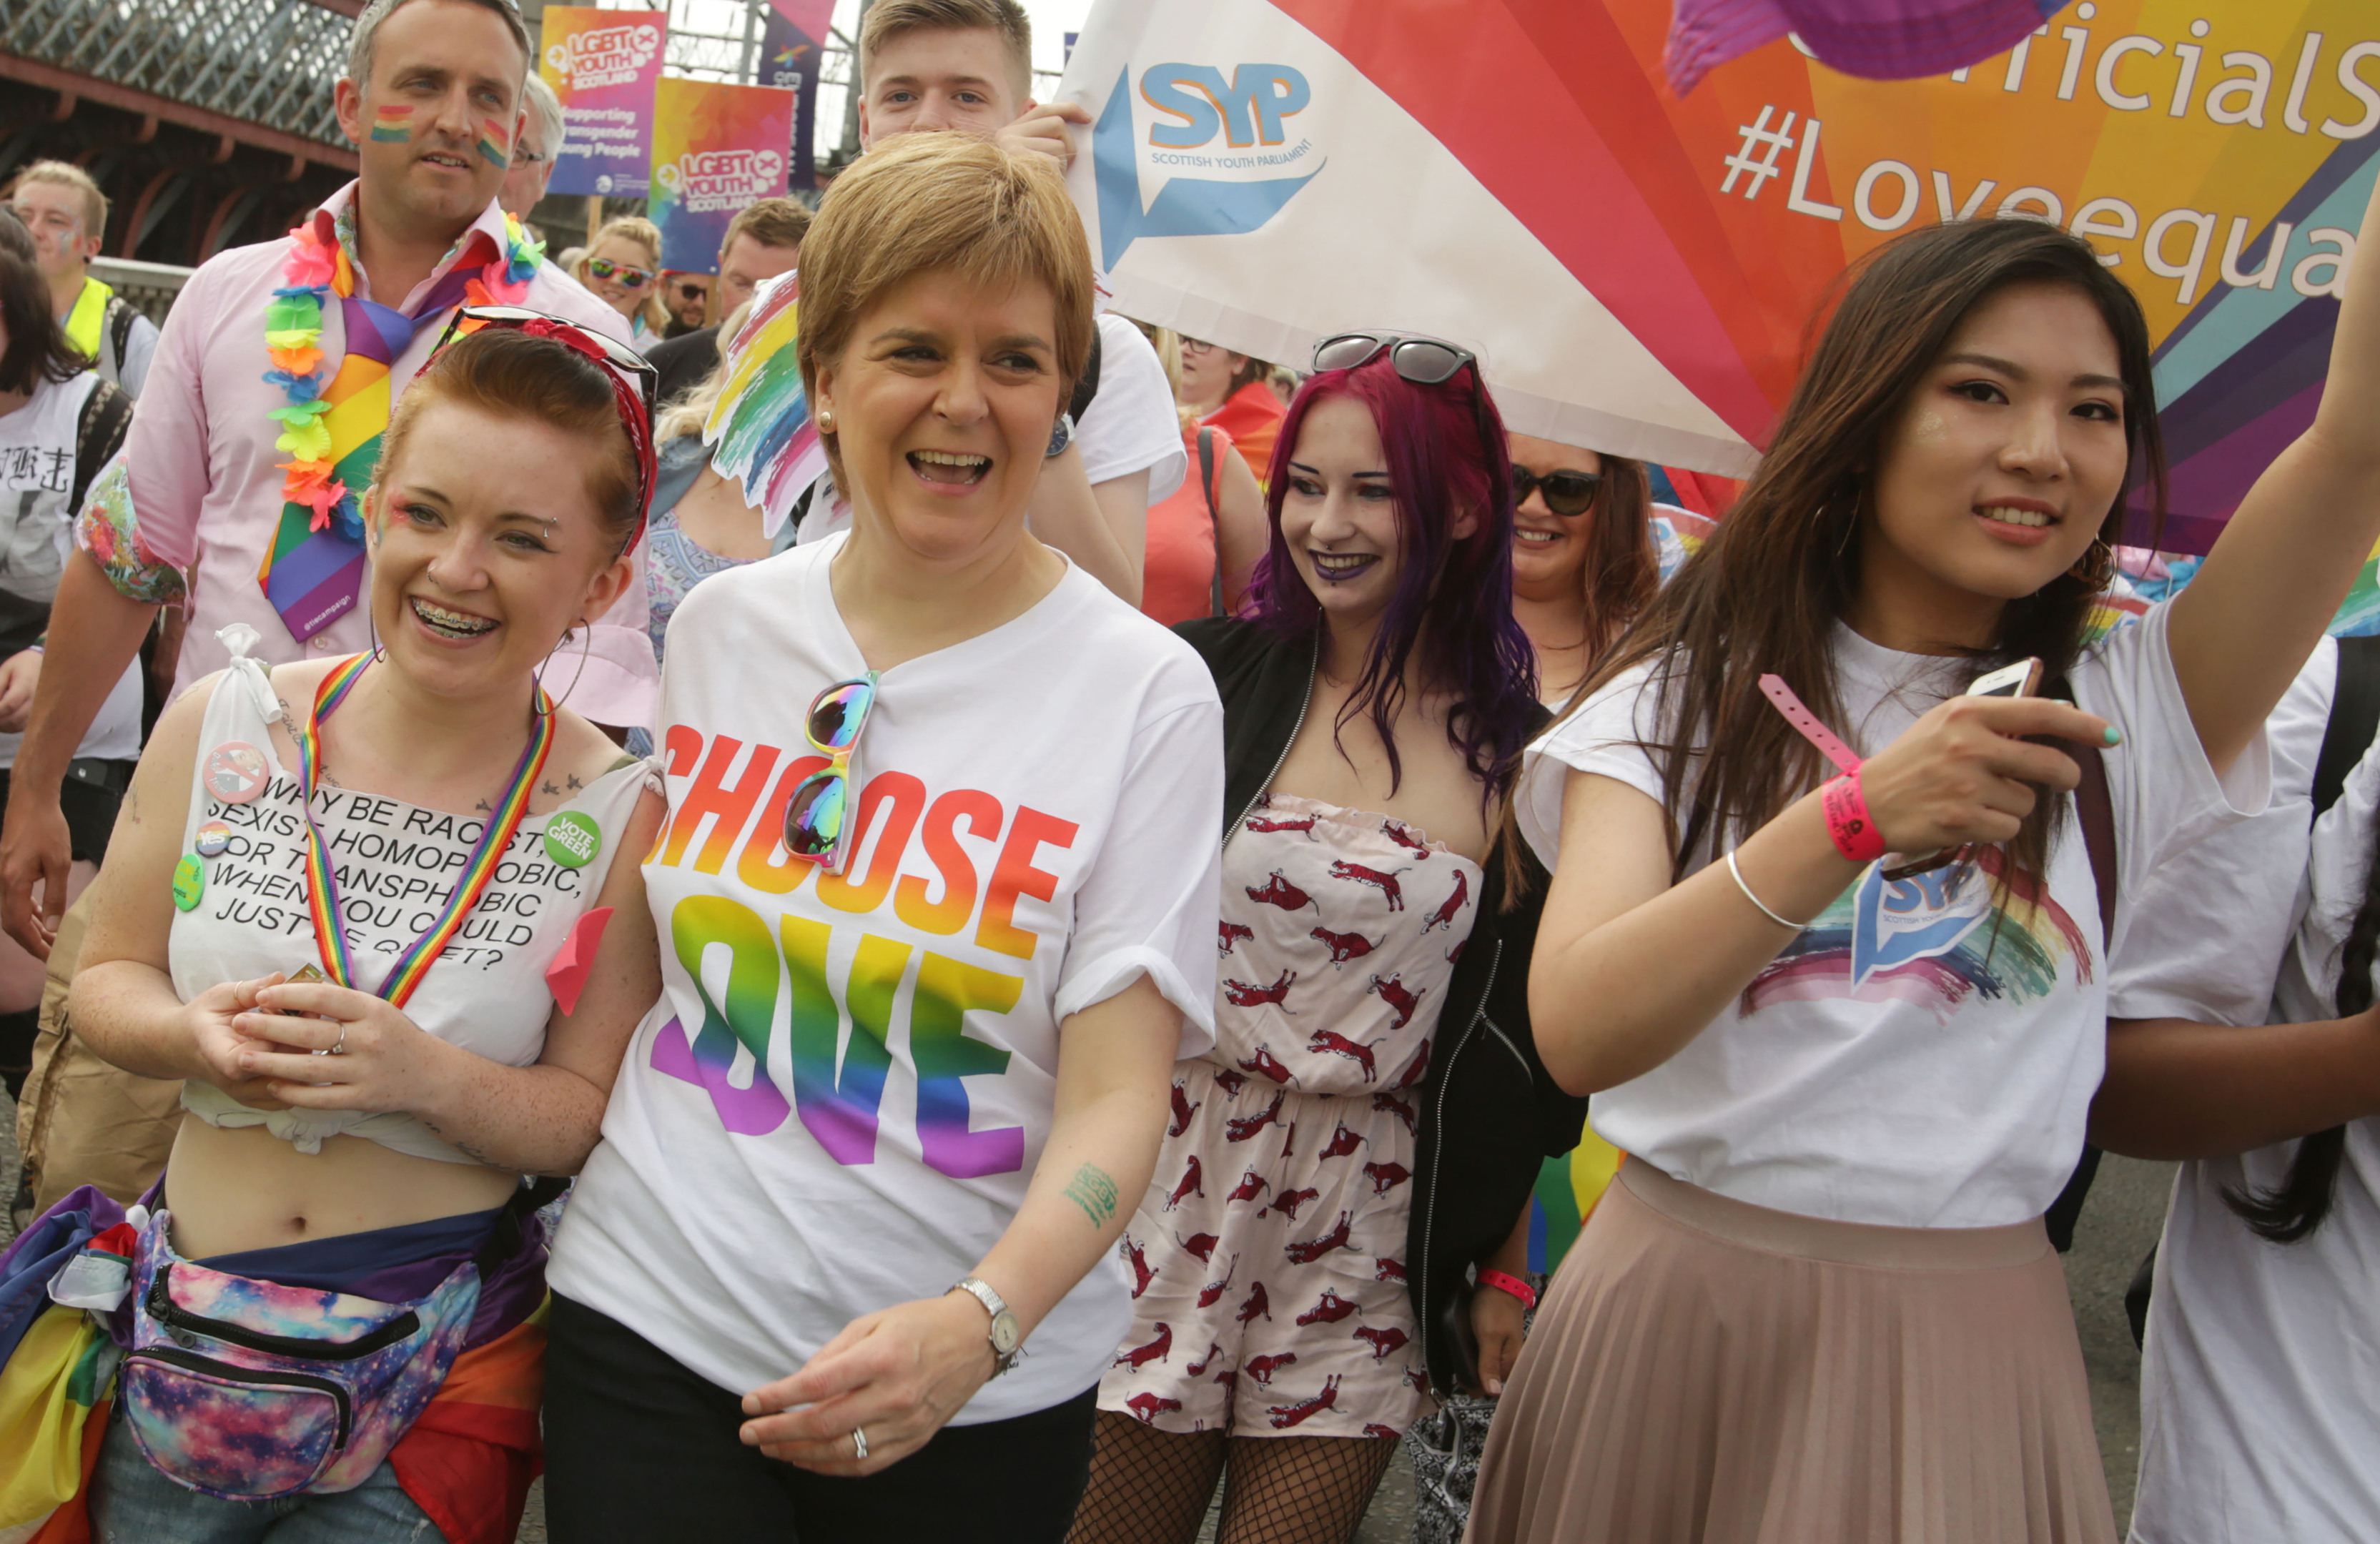 First Minister Nicola Sturgeon leads the Pride parade yesterday, saying the president should try to understand the protests (David Cheskin/PA Wire)